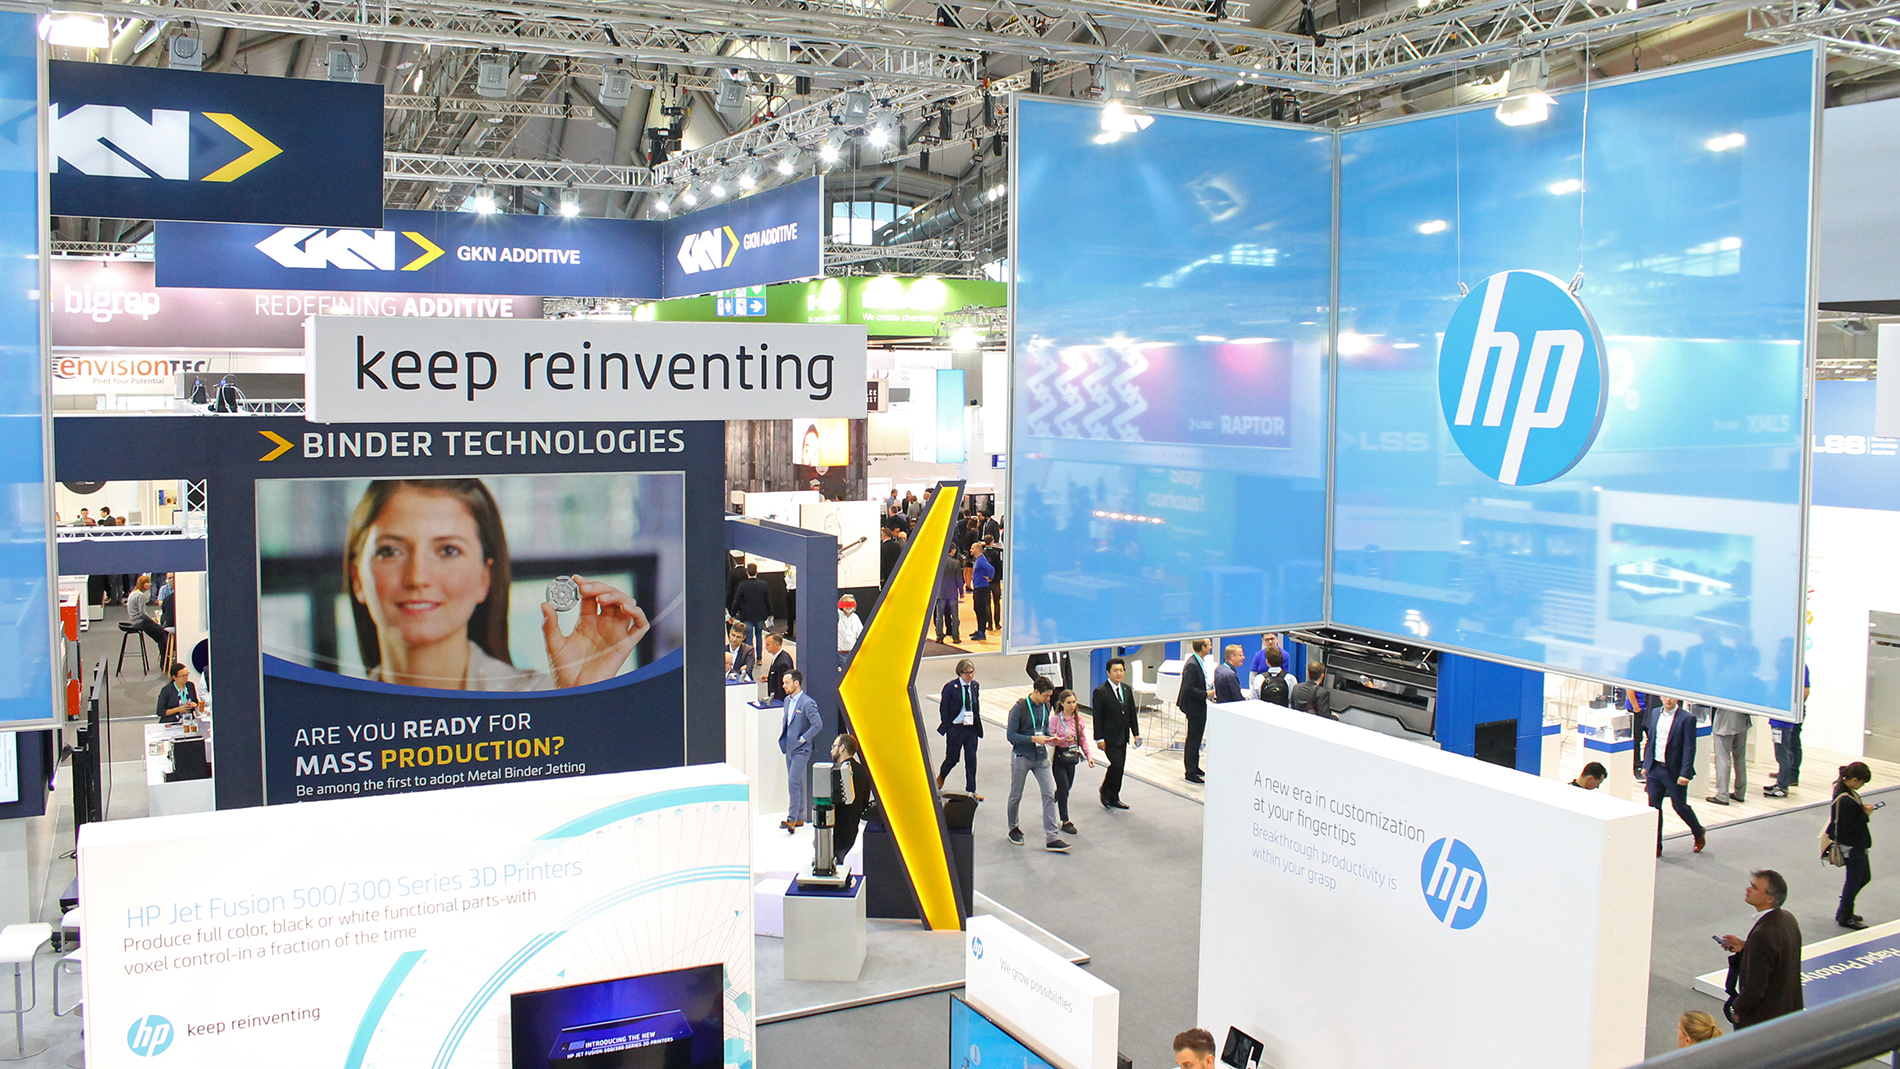 D Printer Exhibition Germany : Formnext u international exhibition and conference on the next